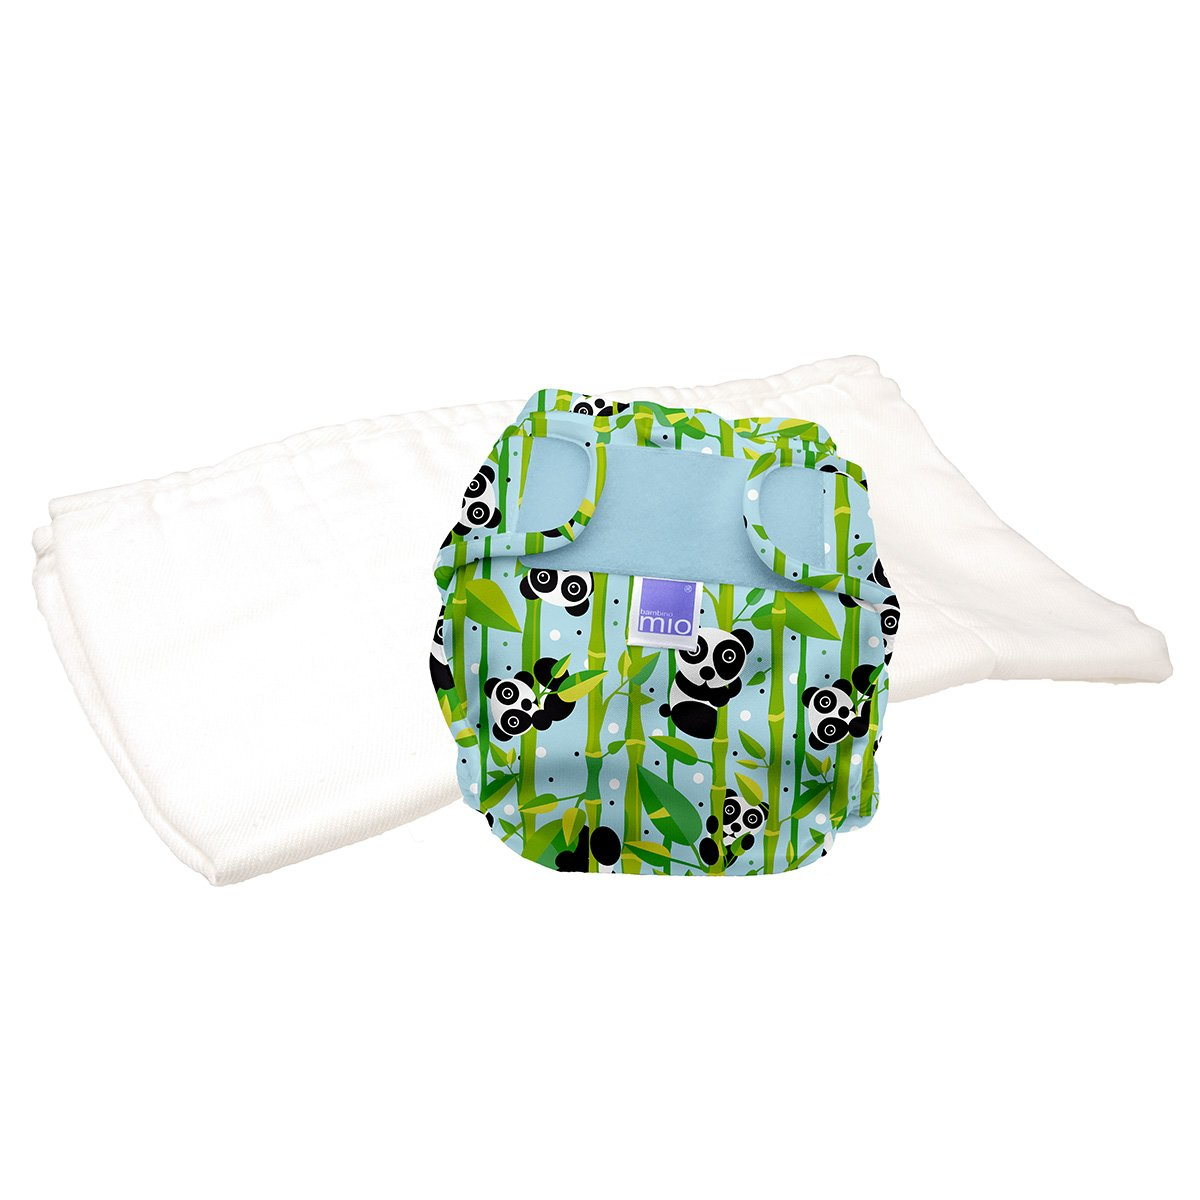 Bambino Mio, Miosoft Cloth Diaper Trial Pack, Bumble, Size 2 (21lbs+)